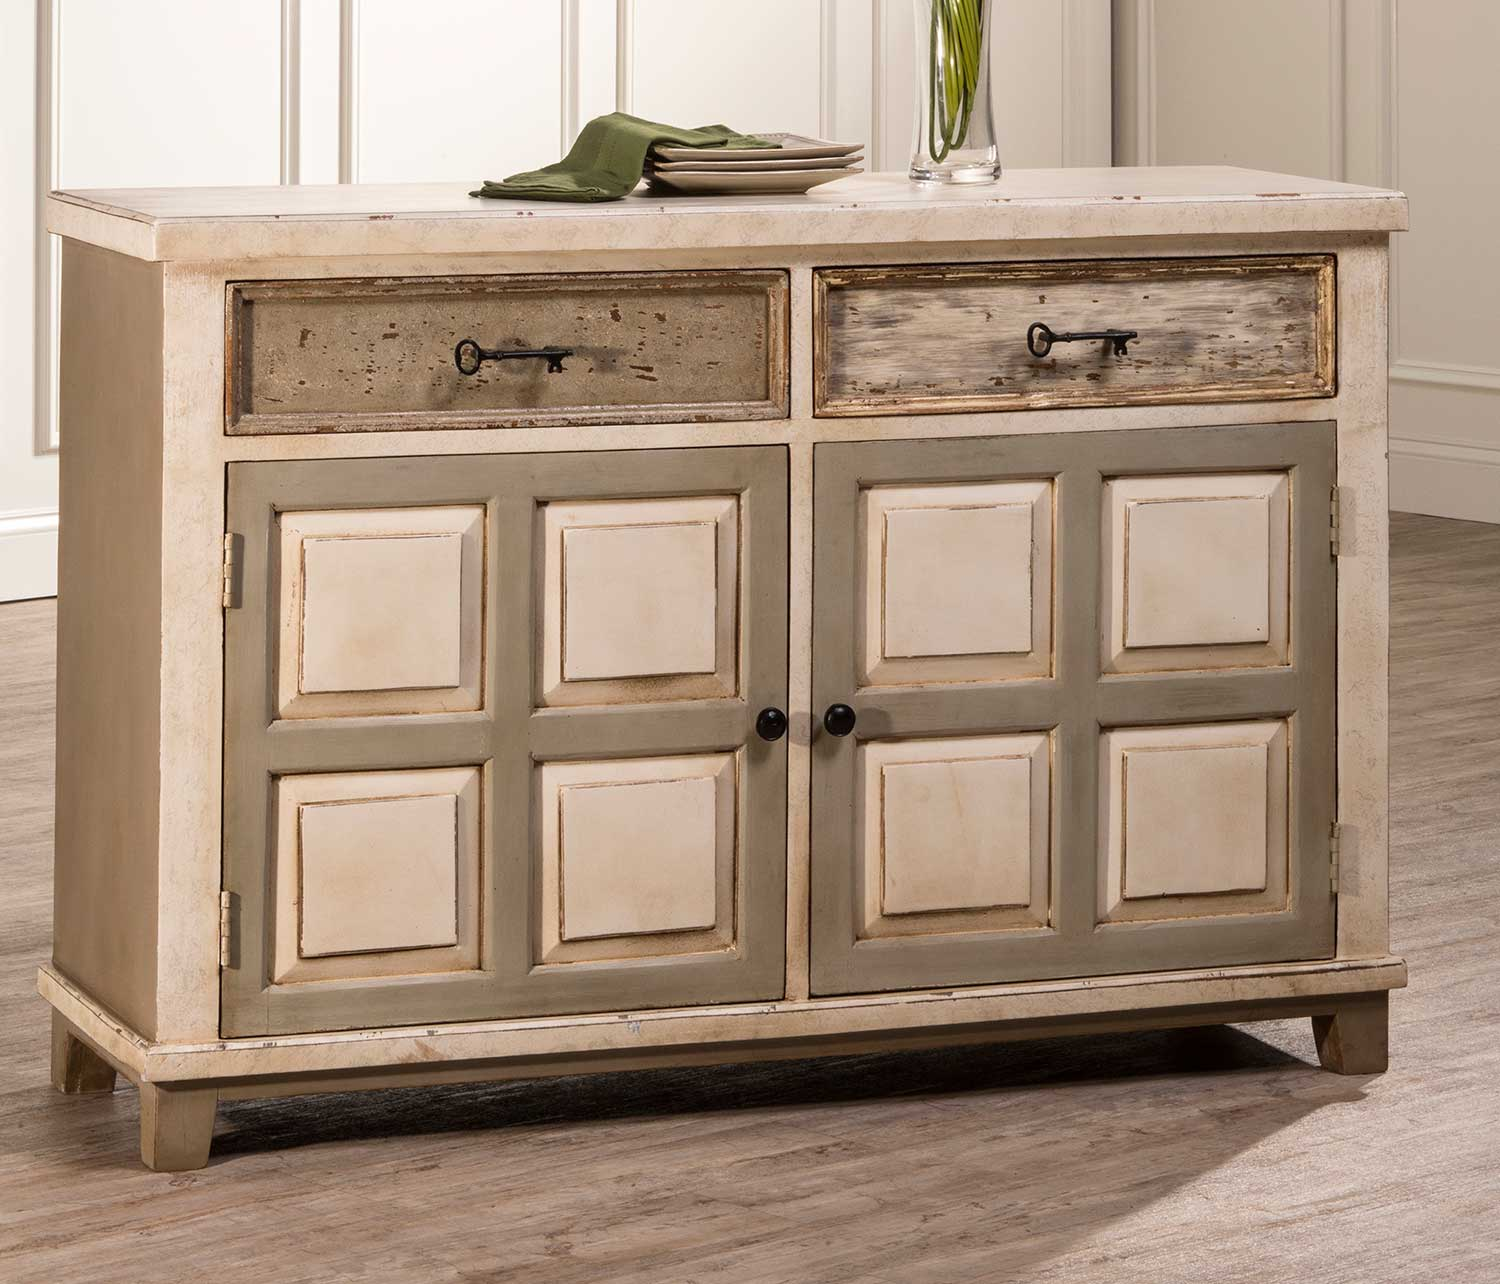 Hillsdale LaRose Console Table With 2 Door Storage   Handpainted White/Gray